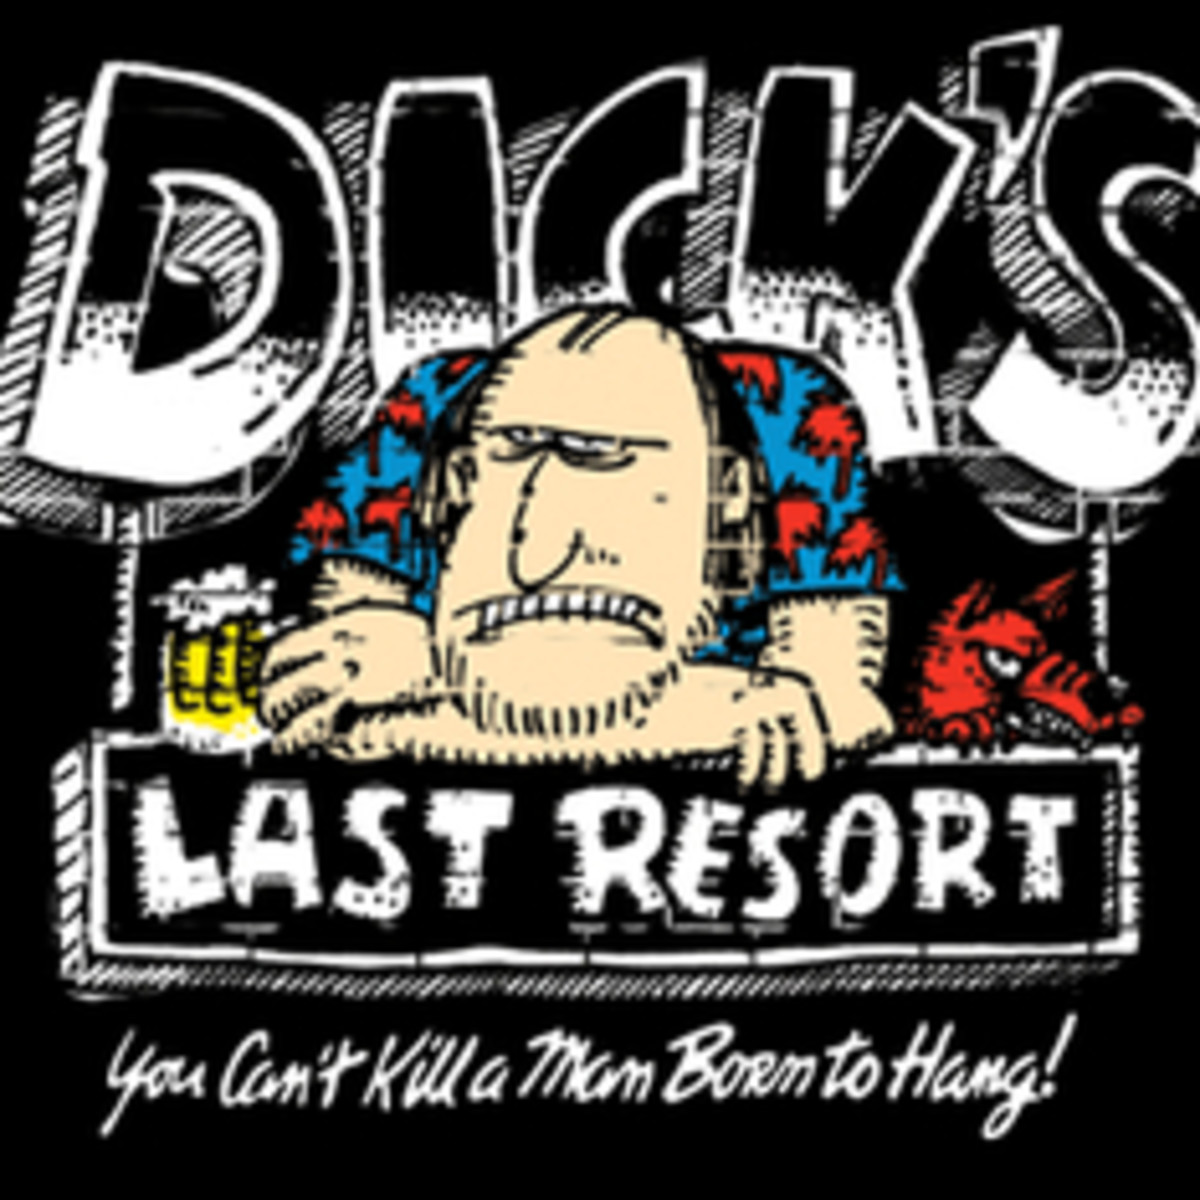 The logo for Dick's Last Resort.